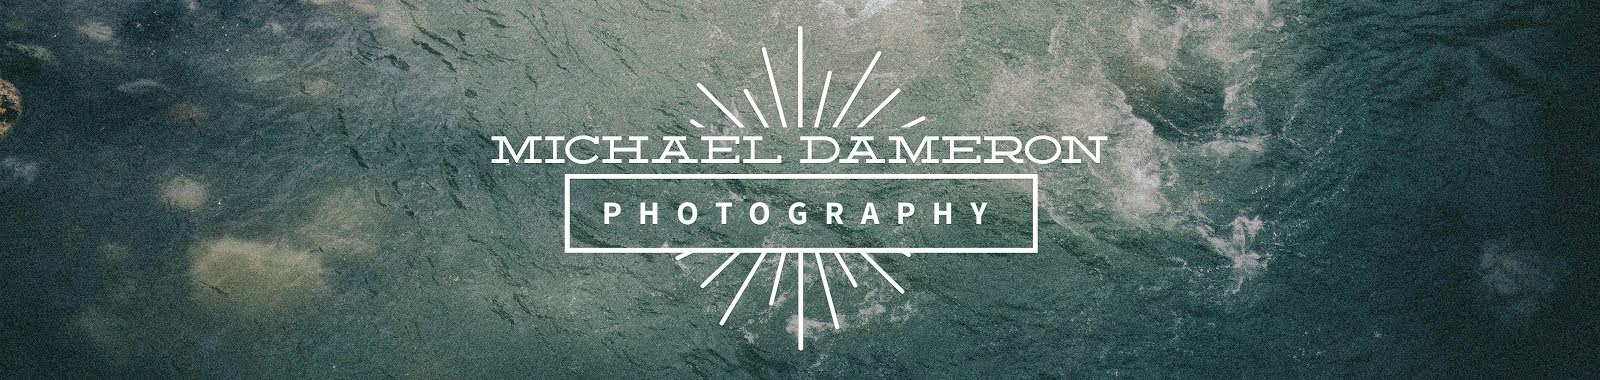 Michael Dameron Photography